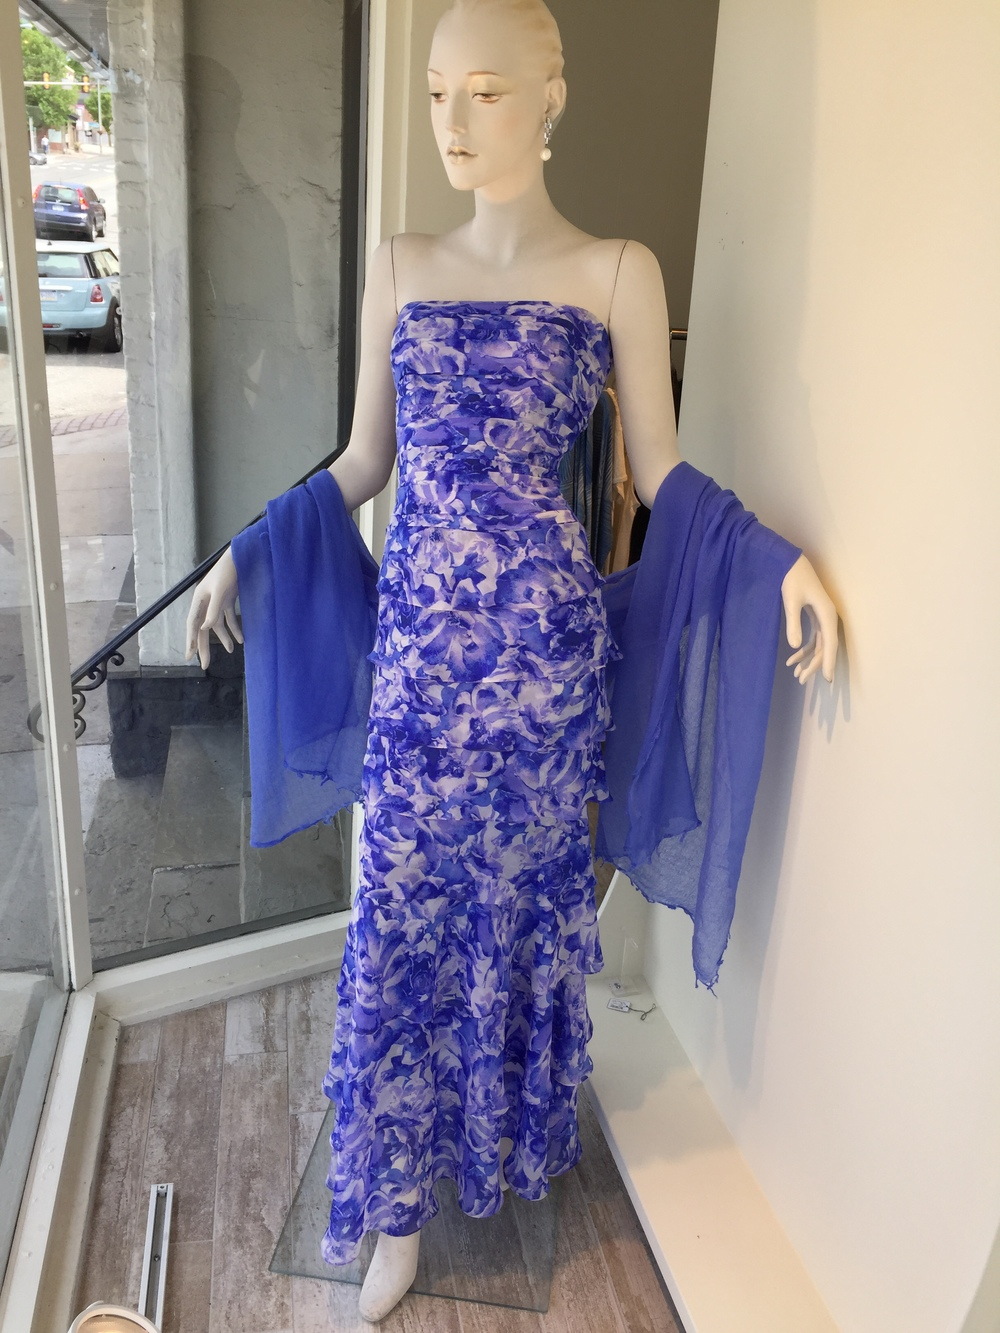 This is a Latrice classic gown, now offered in this gorgeous violet and lilac floral print silk chiffon.